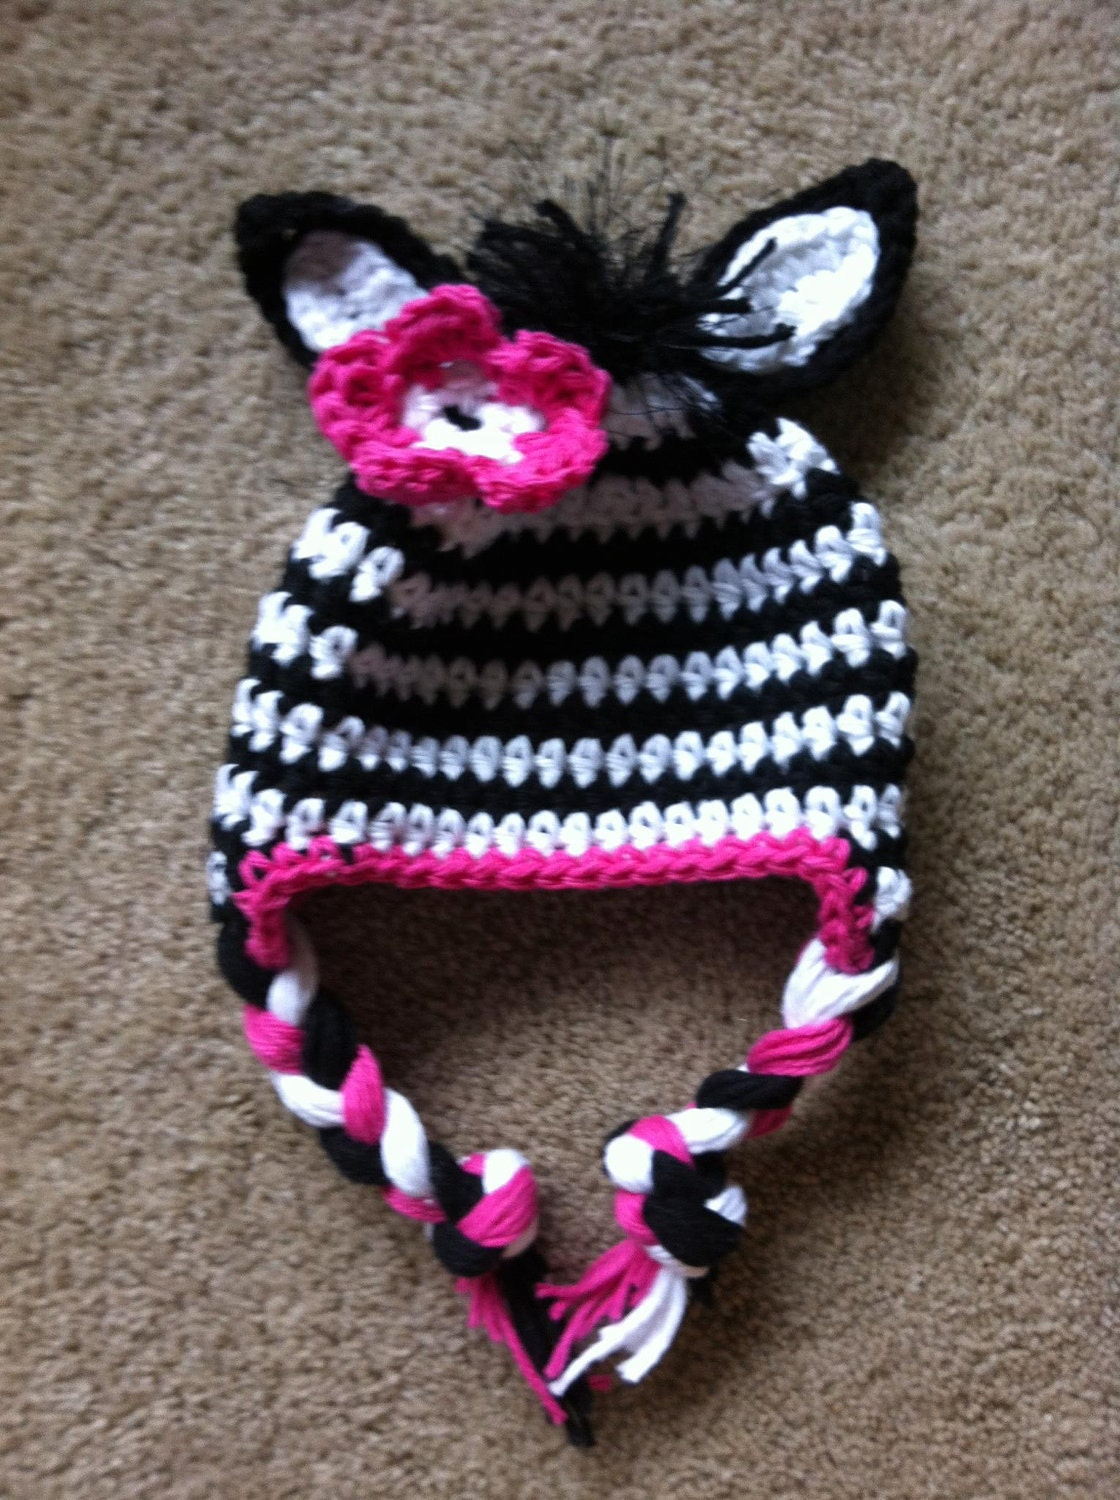 Crochet Zebra Hat : Crochet zebra hat newborn zebra hat toddler zebra by MRocheCrochet